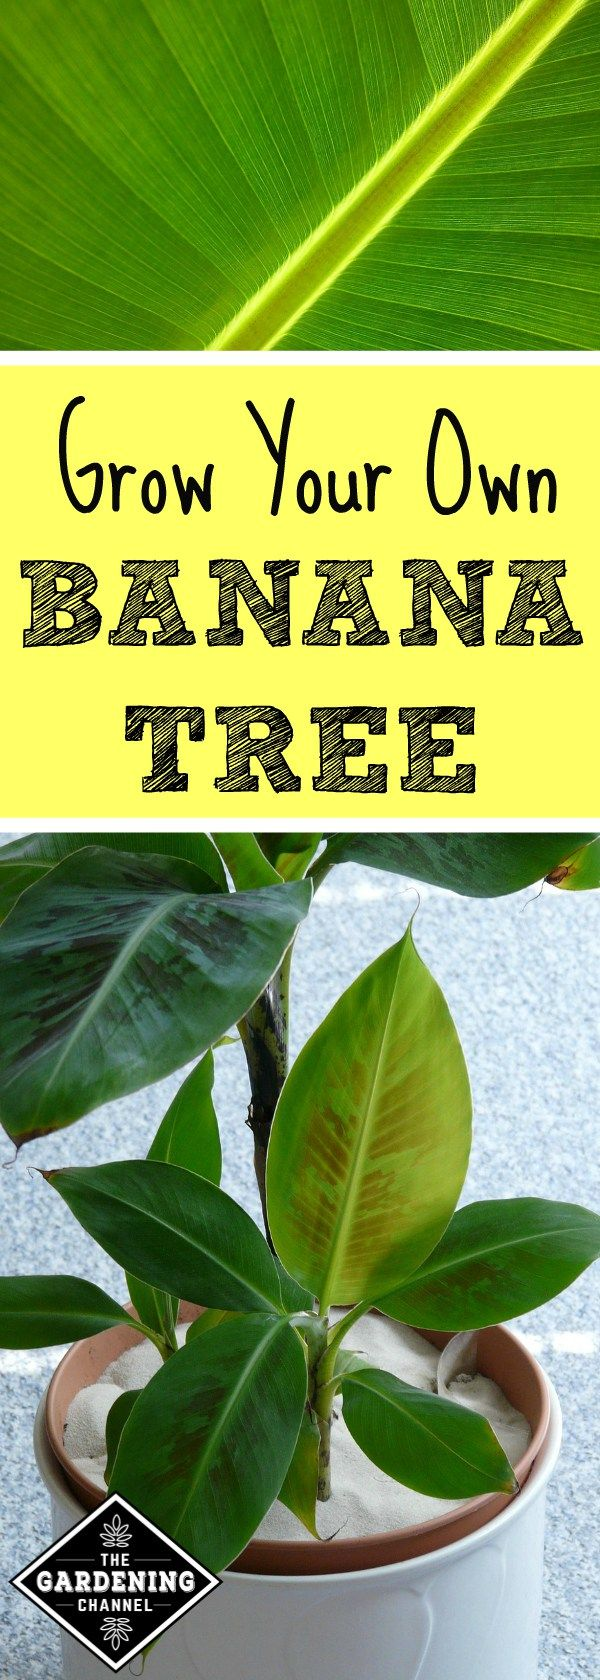 best growing fruit trees and plants images on pinterest fruit